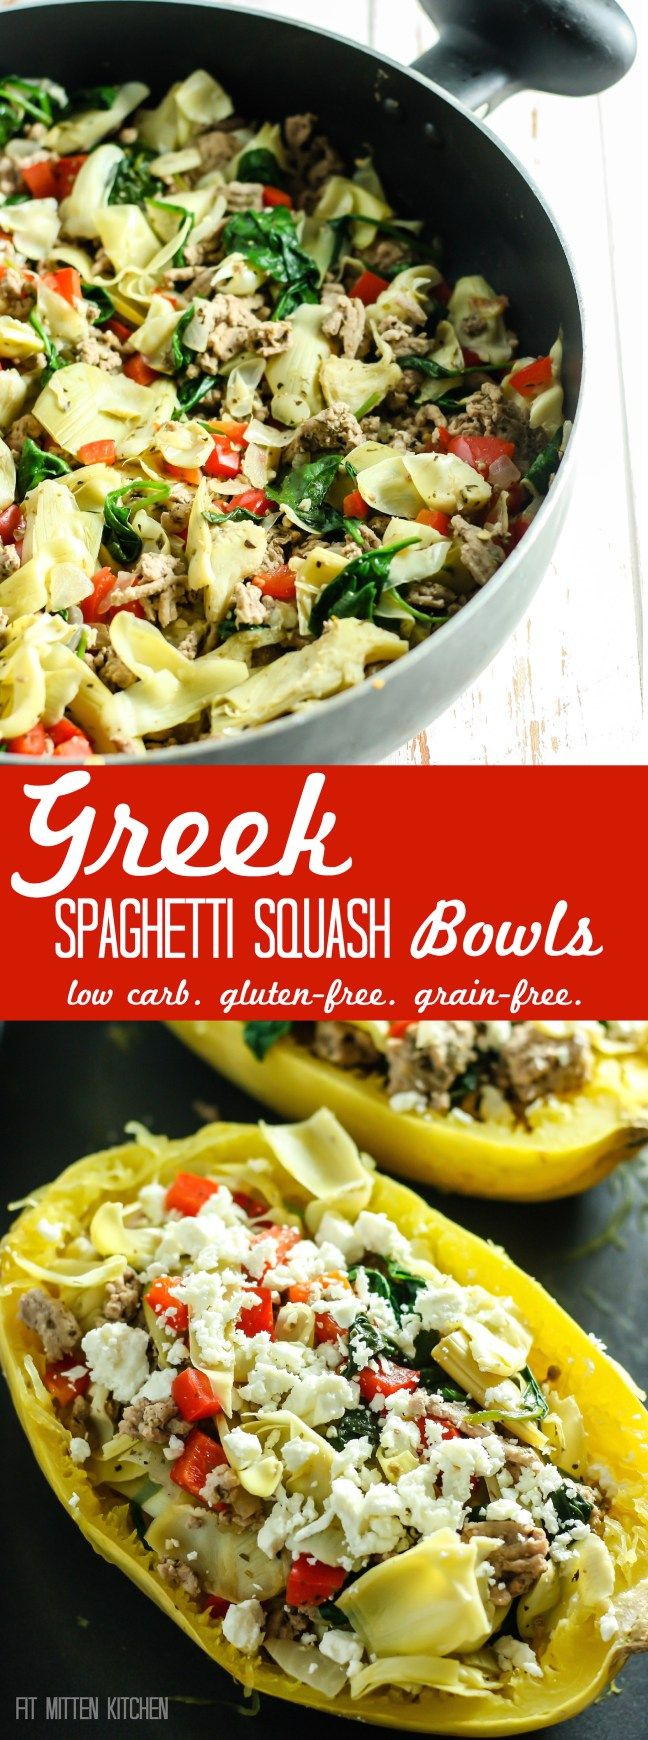 Greek Spaghetti Squash Bowls   A healthy, low carb dinner packed with veggies and protein. Found on fitmittenkitchen.com